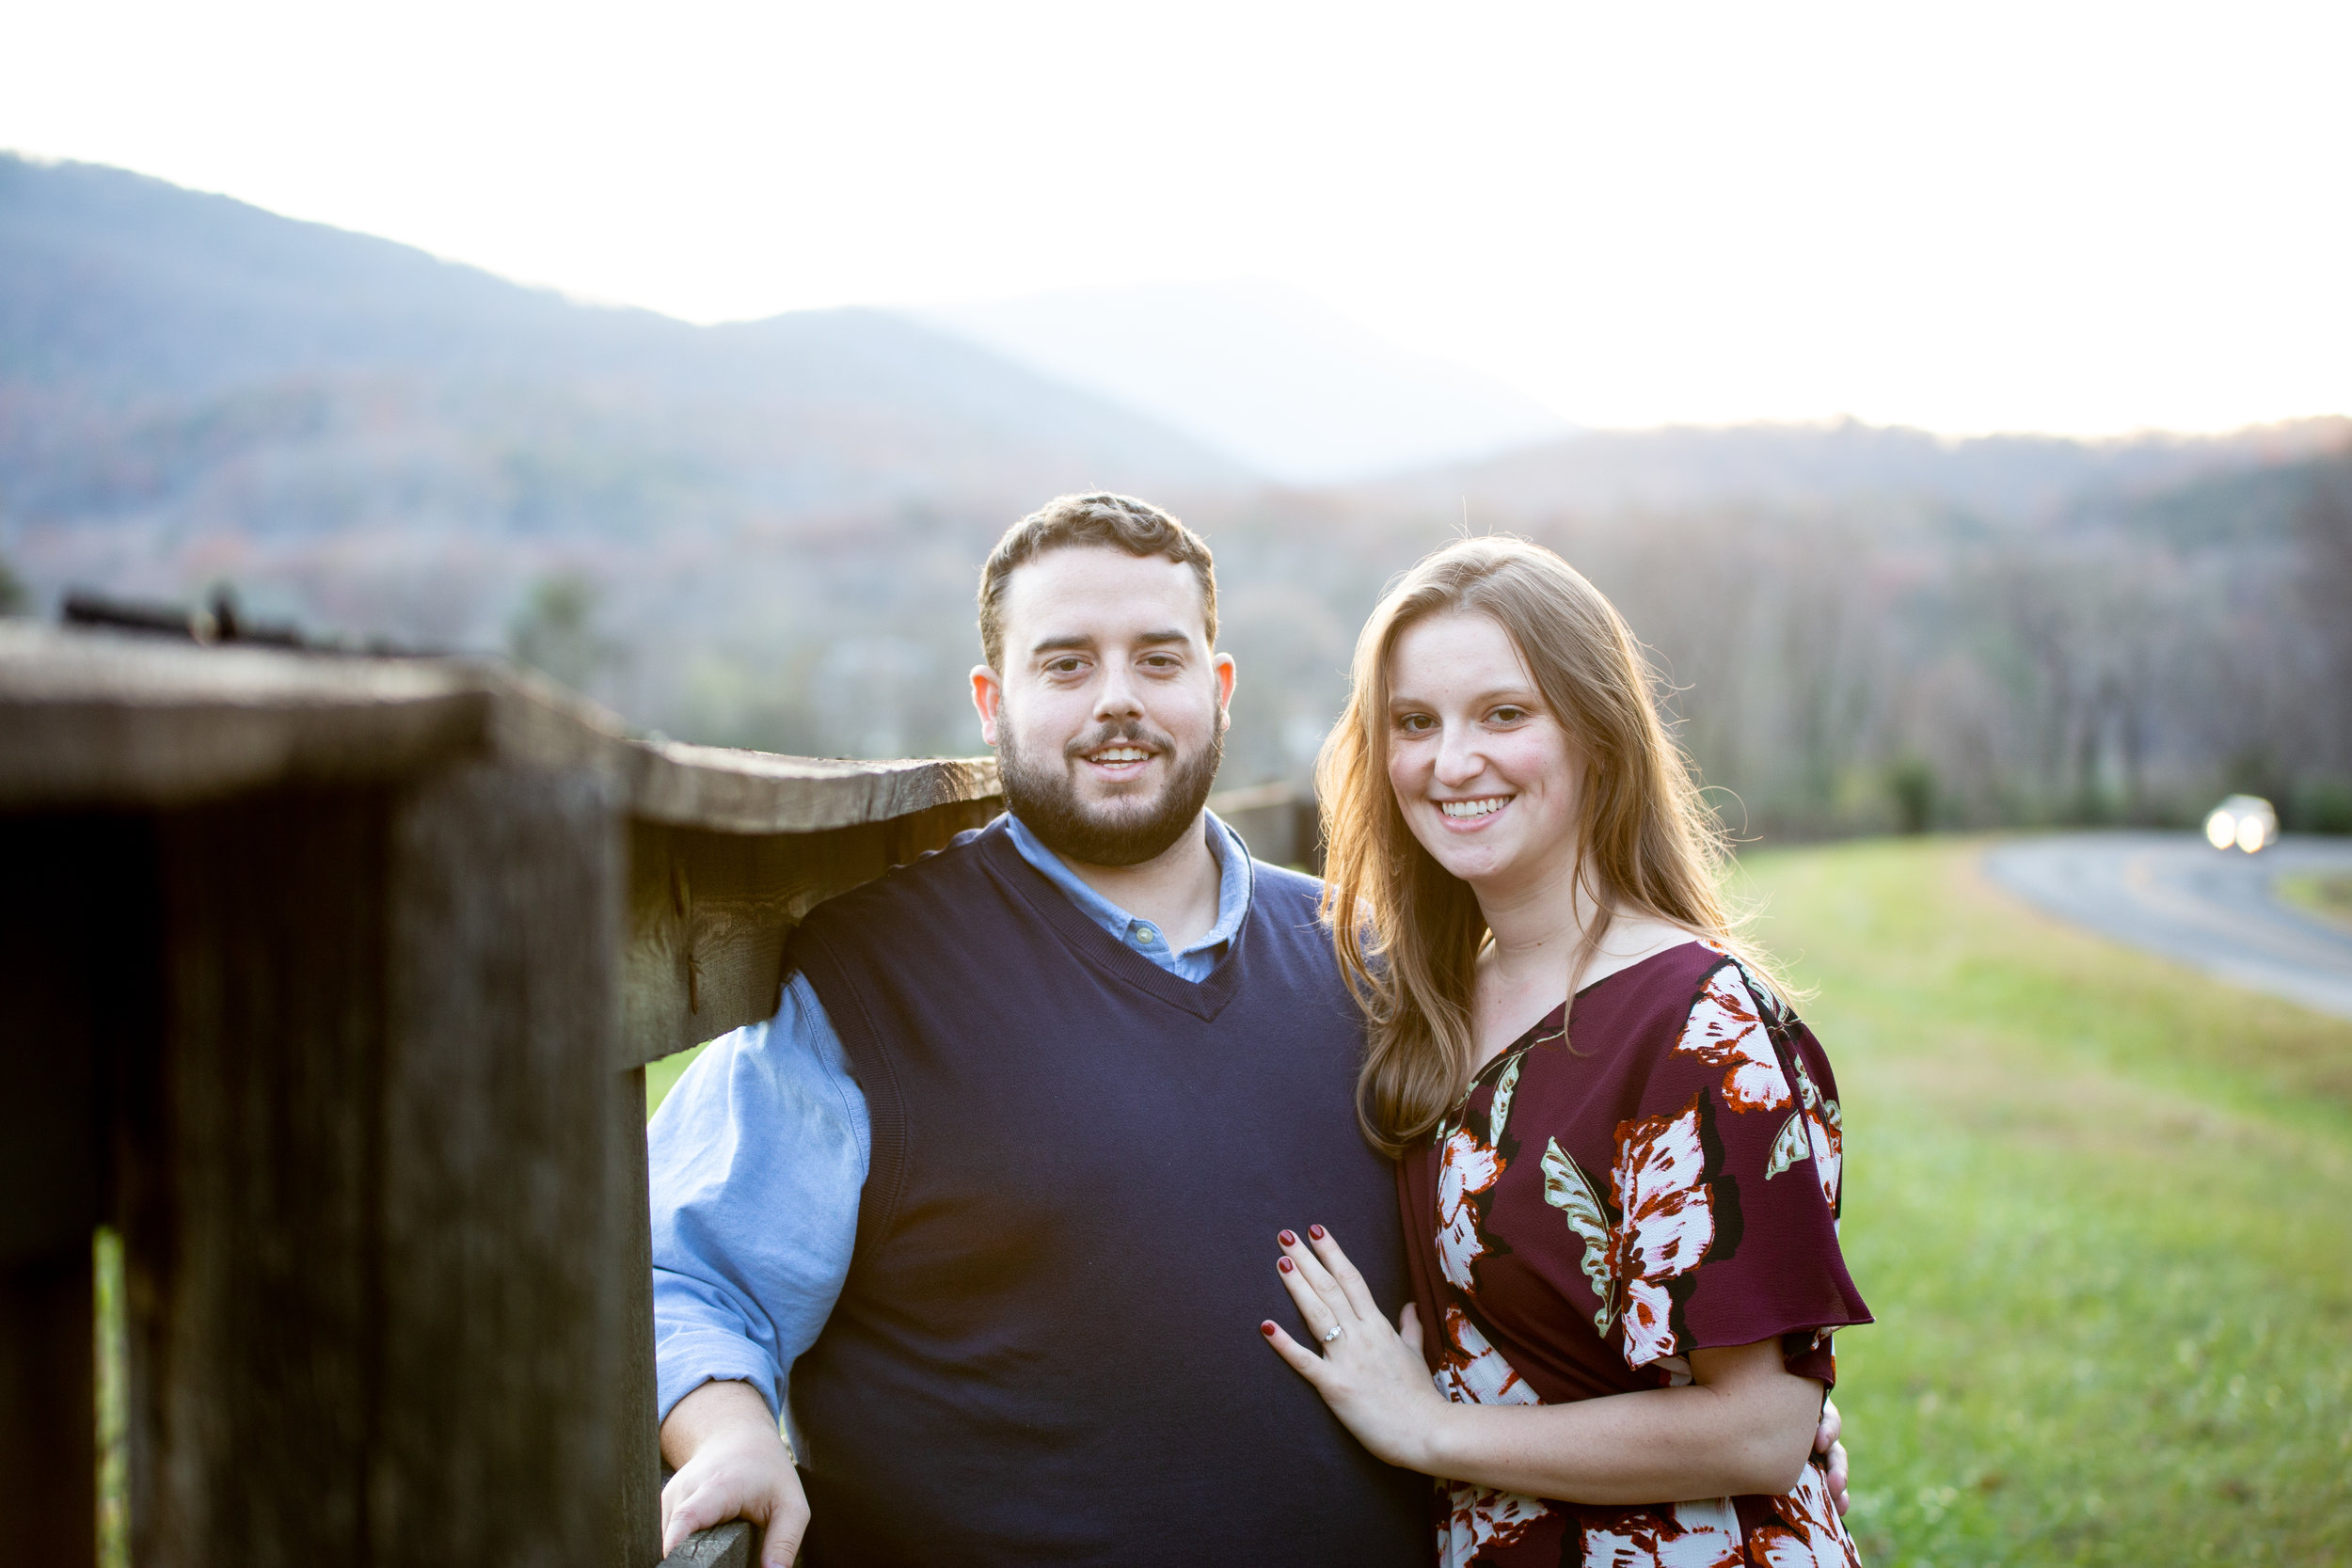 Blue-Ridge-Parkway-Fall-Sunset-couple-engaged-mountains-love-together-fence-roanoke-engaged-beauty-virginia-photography-nature-candid